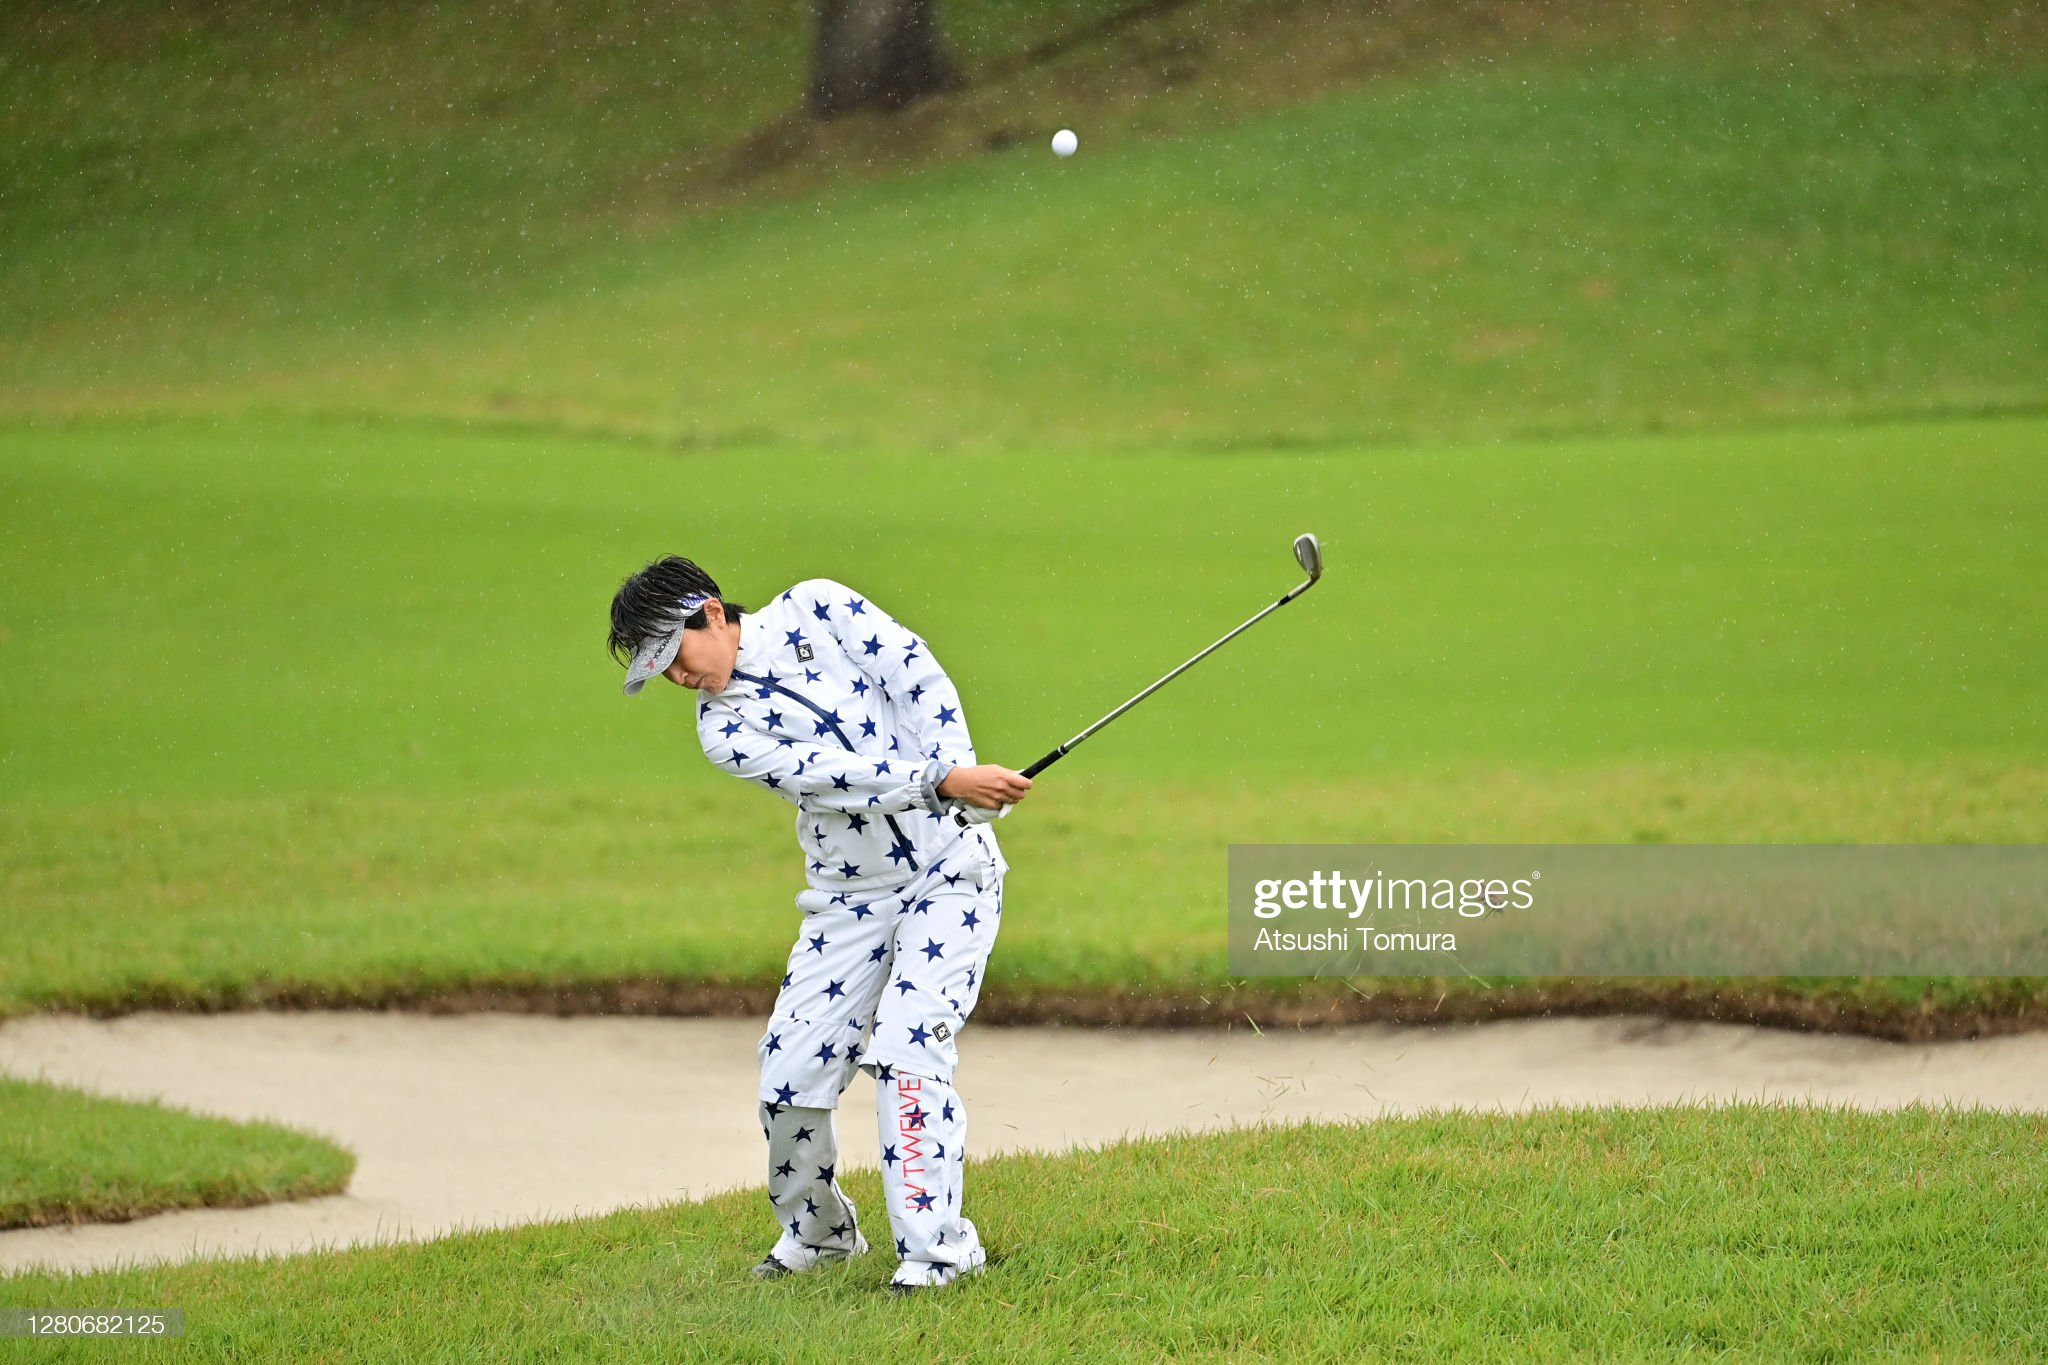 https://media.gettyimages.com/photos/asako-fujimoto-of-japan-hits-her-third-shot-on-the-7th-hole-during-picture-id1280682125?s=2048x2048